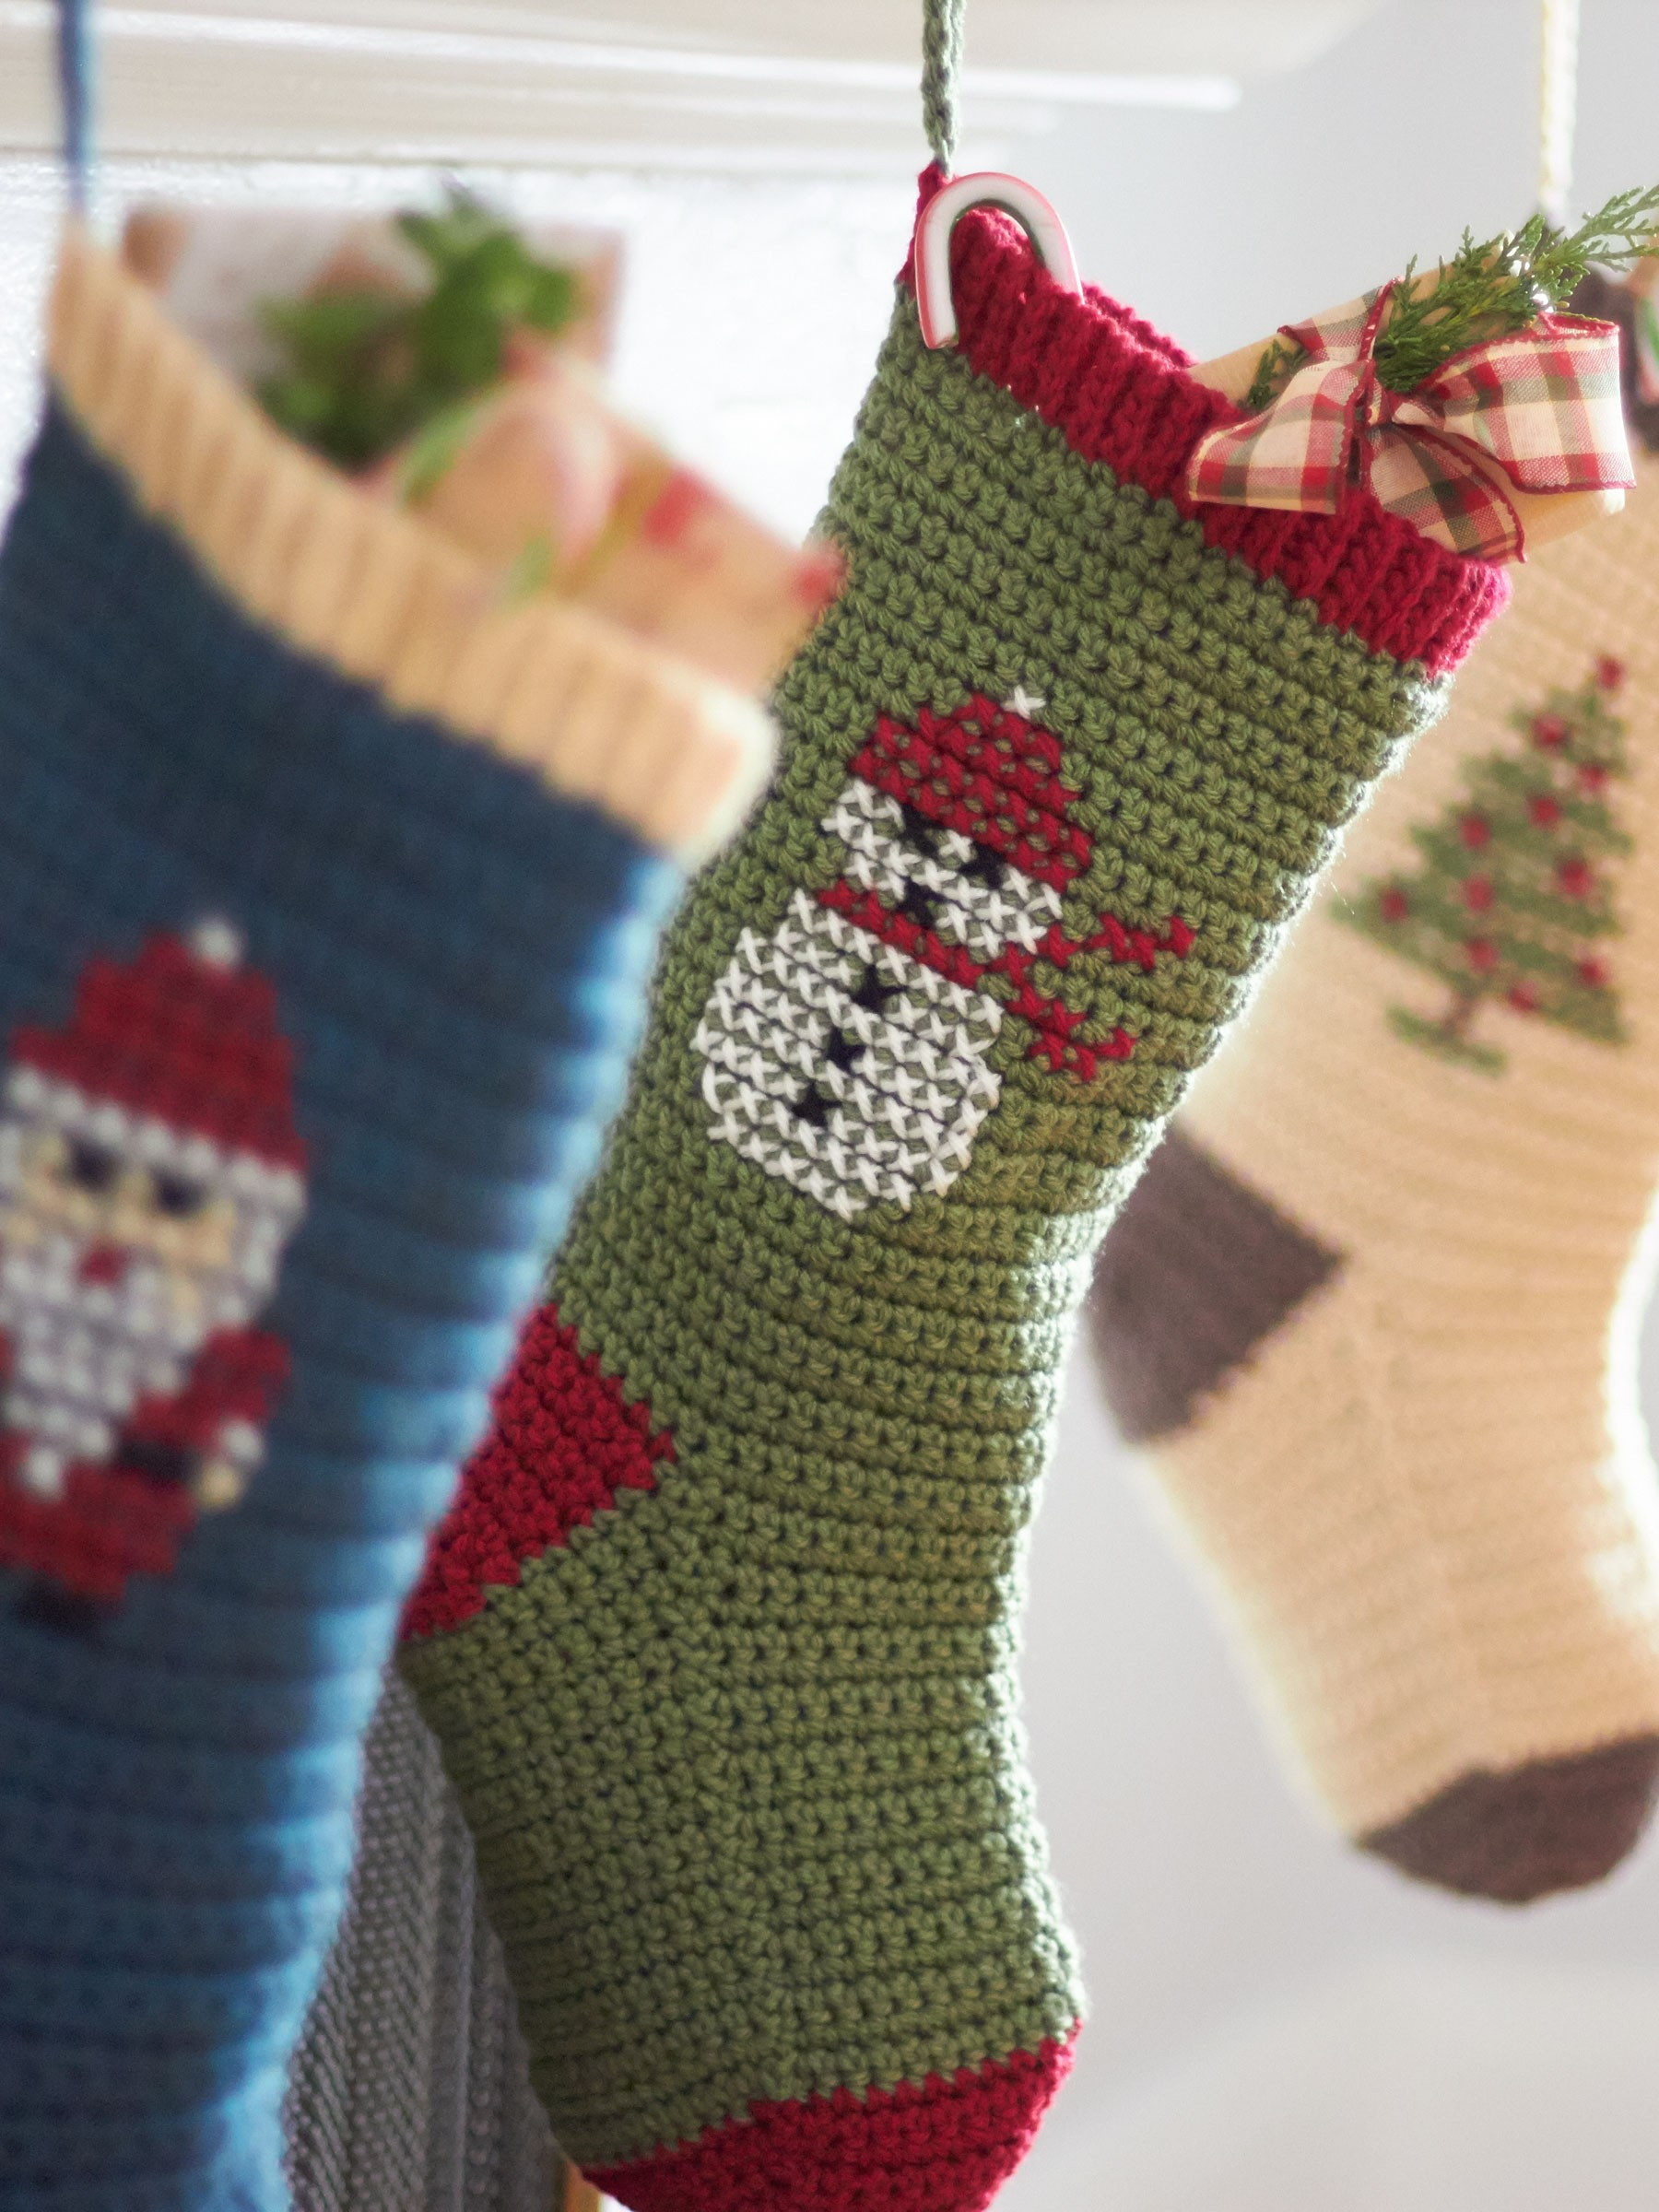 Free Crochet Christmas Stocking Patterns New Free Printable Crochet Patterns for Christmas Stockings Of Top 44 Photos Free Crochet Christmas Stocking Patterns